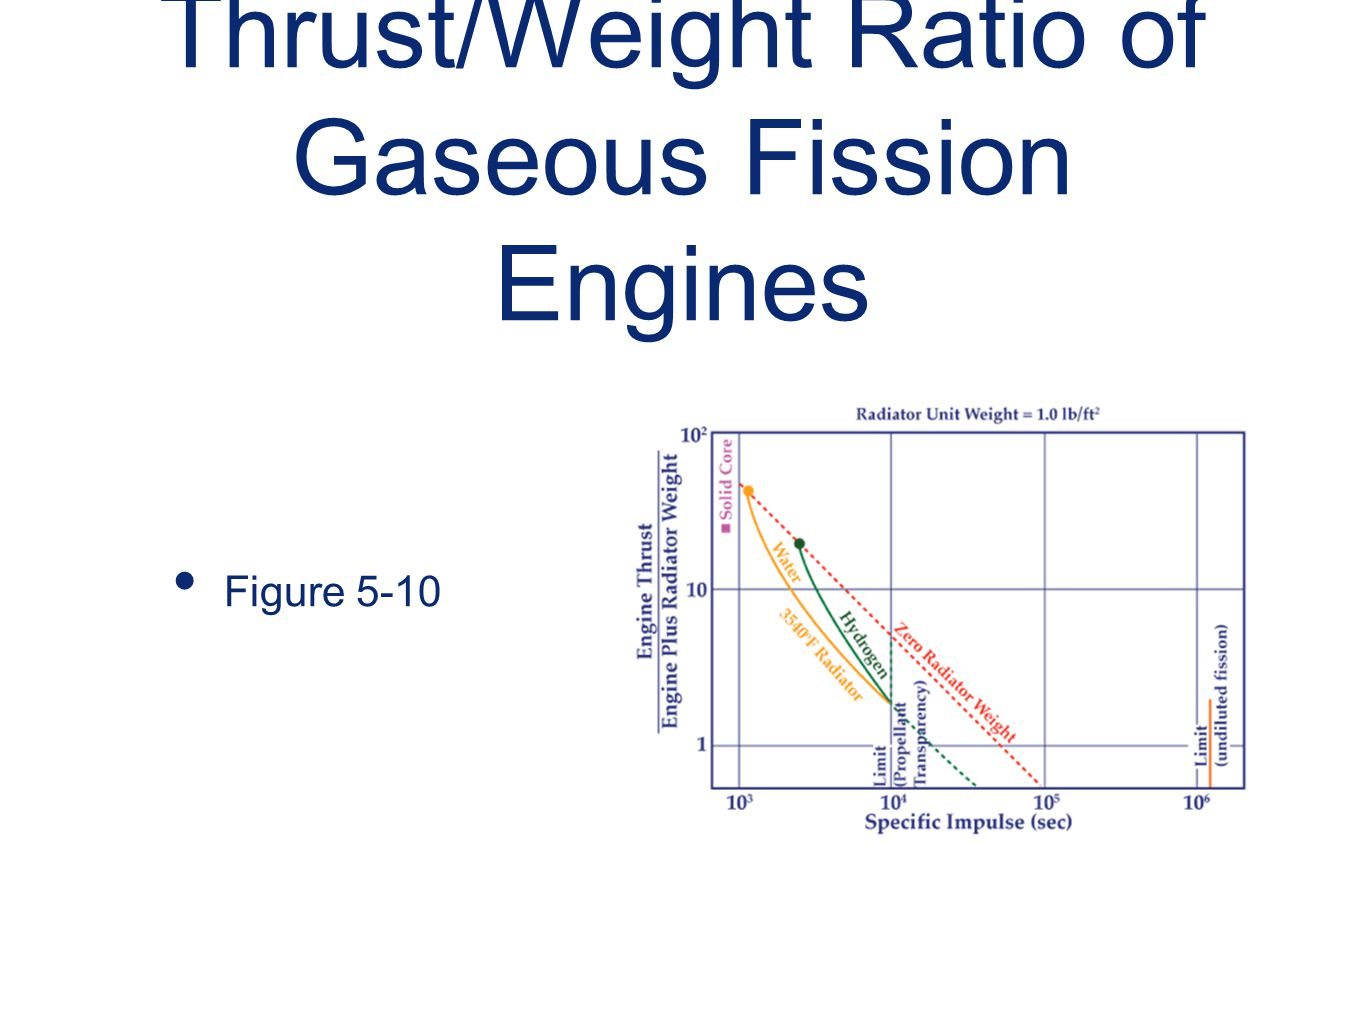 Thrust/Weight Ratio of Gaseous Fission Engines